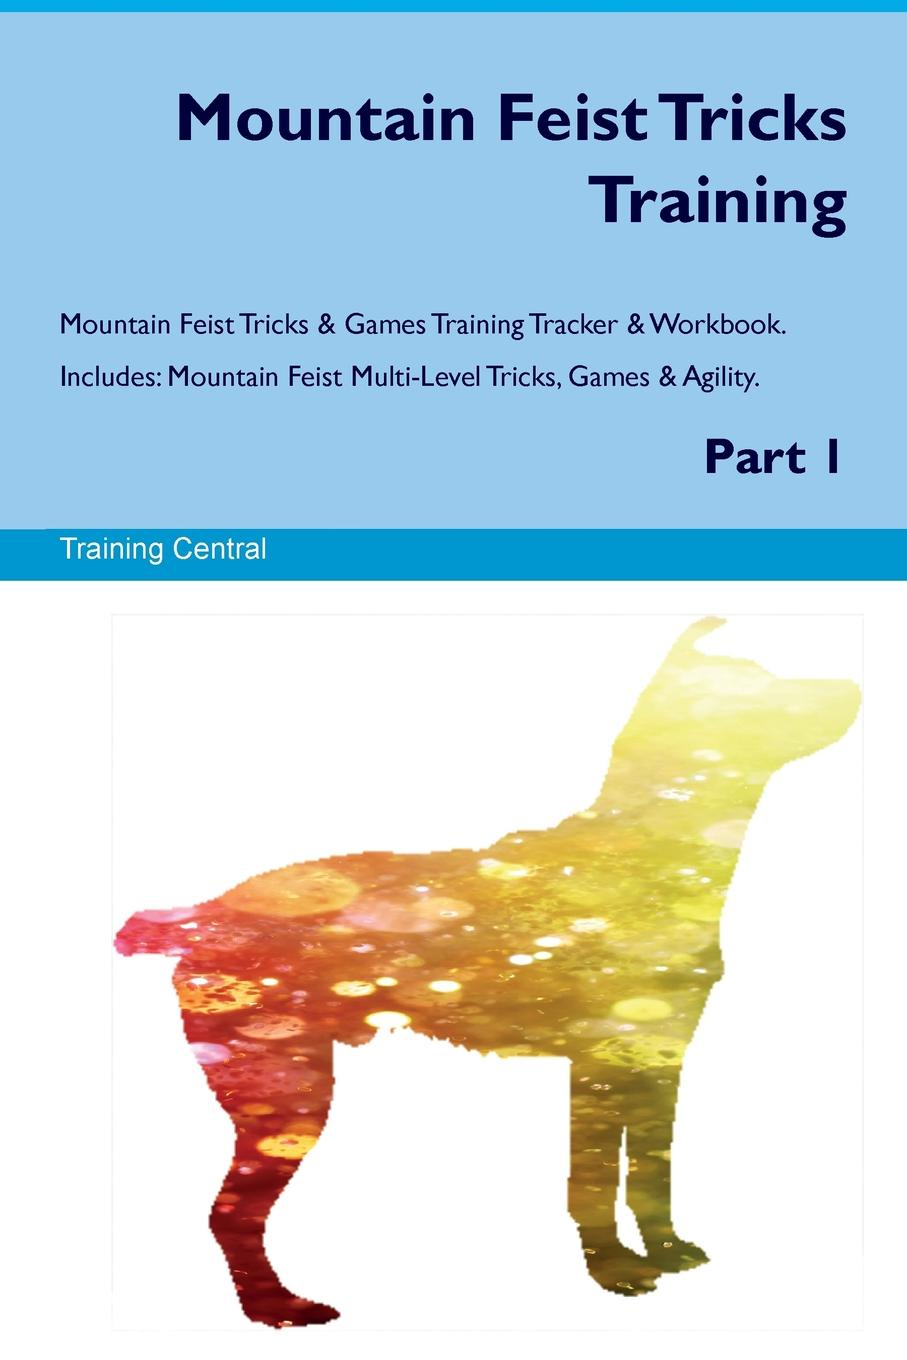 Training Central Mountain Feist Tricks Training Mountain Feist Tricks & Games Training Tracker & Workbook. Includes. Mountain Feist Multi-Level Tricks, Games & Agility. Part 1 training central mountain feist tricks training mountain feist tricks